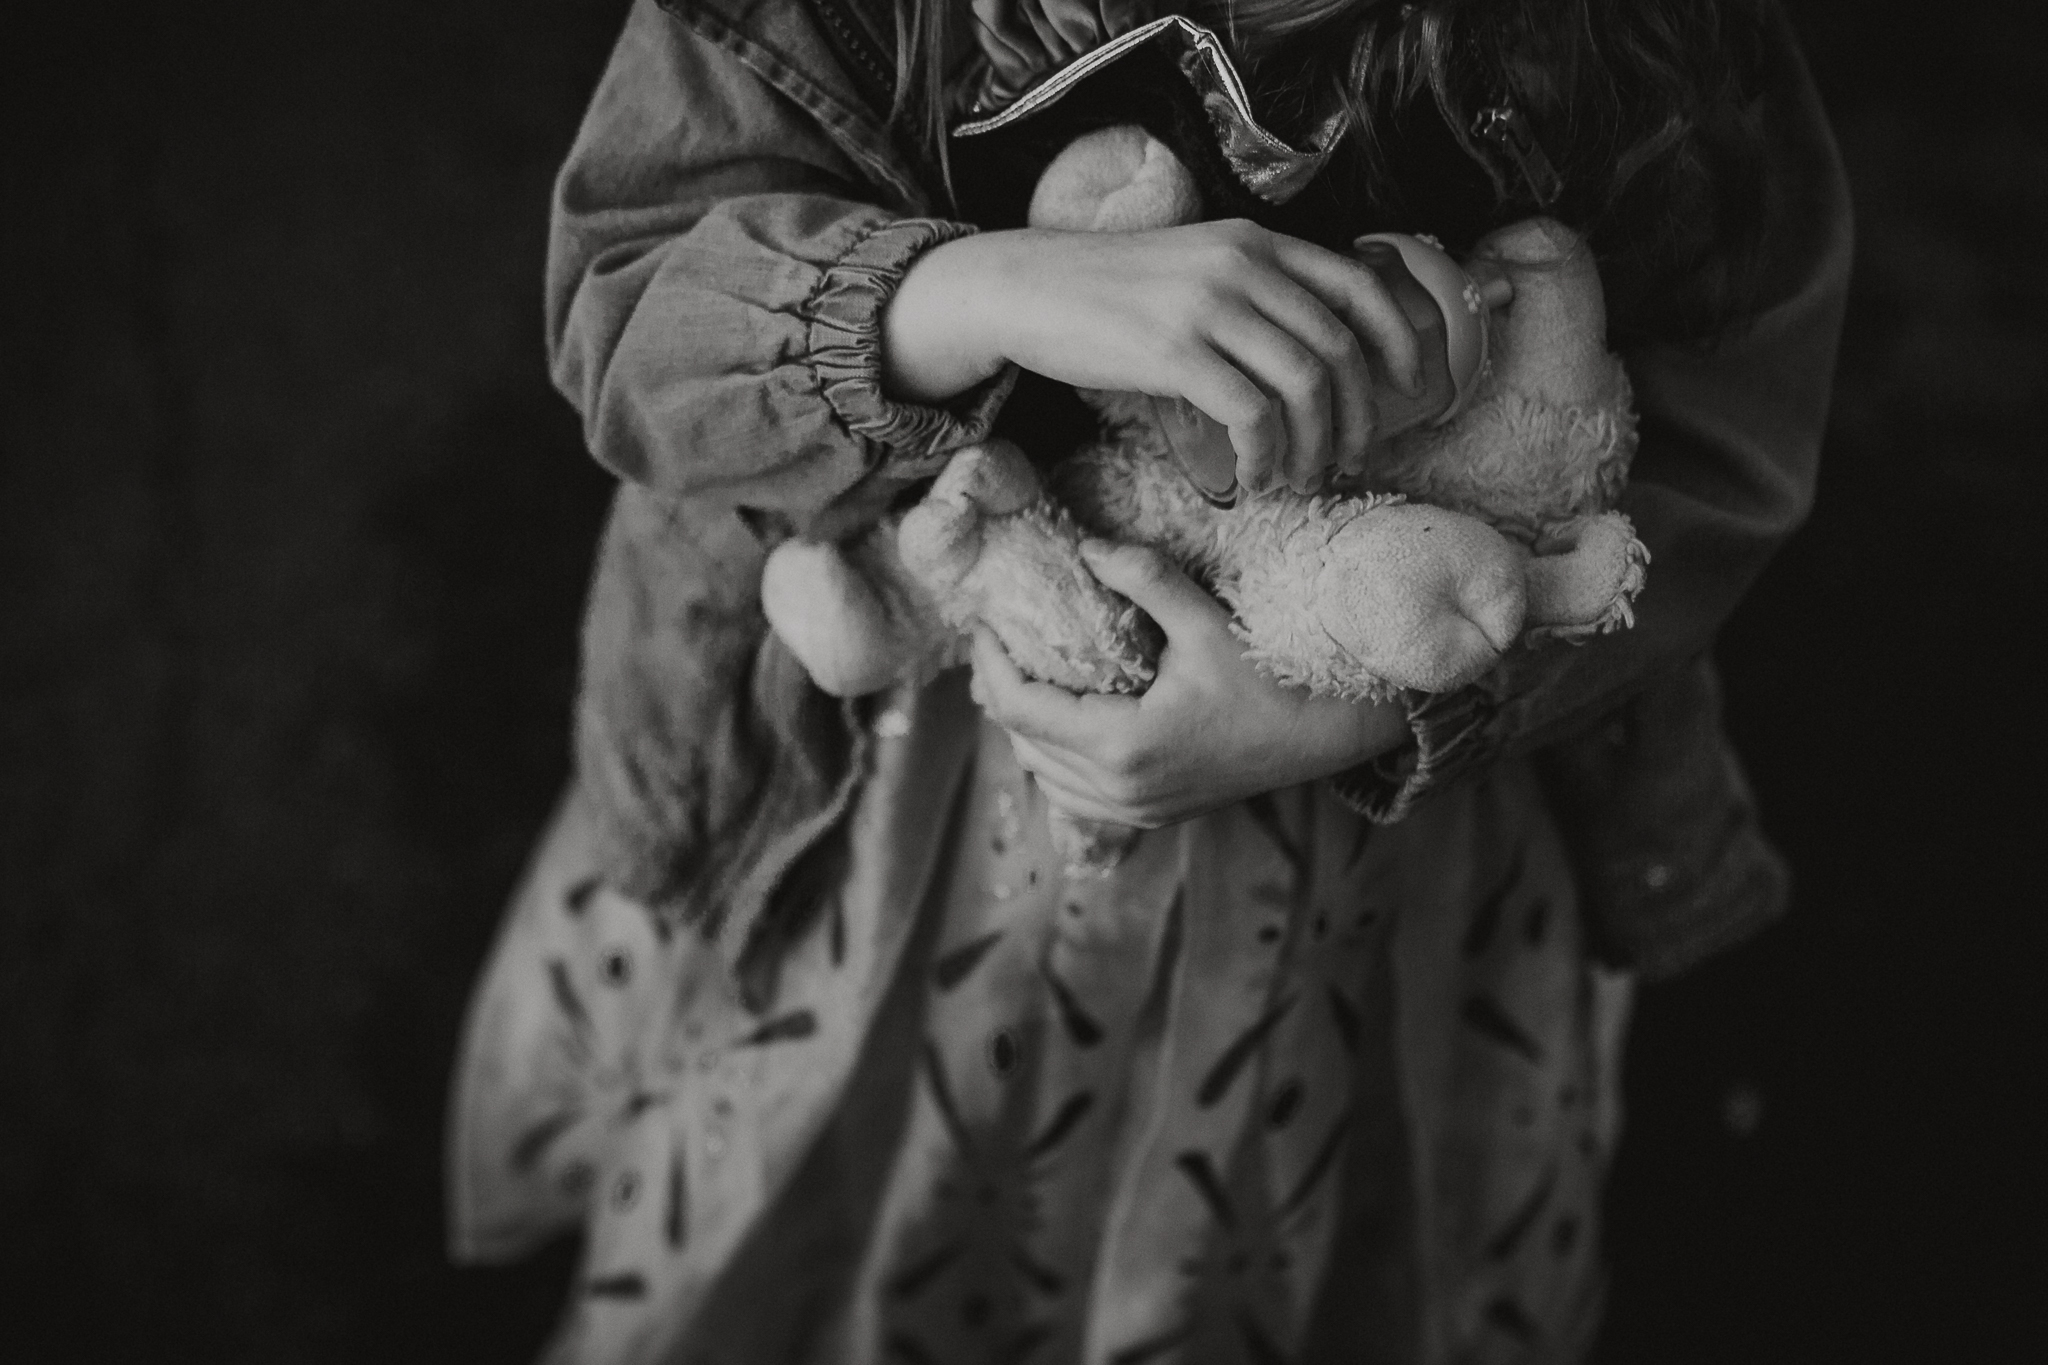 black and white hands bottle details stuffed animal lamb childhood lifestyle documentary Ashburn Virginia Marti Austin Photography